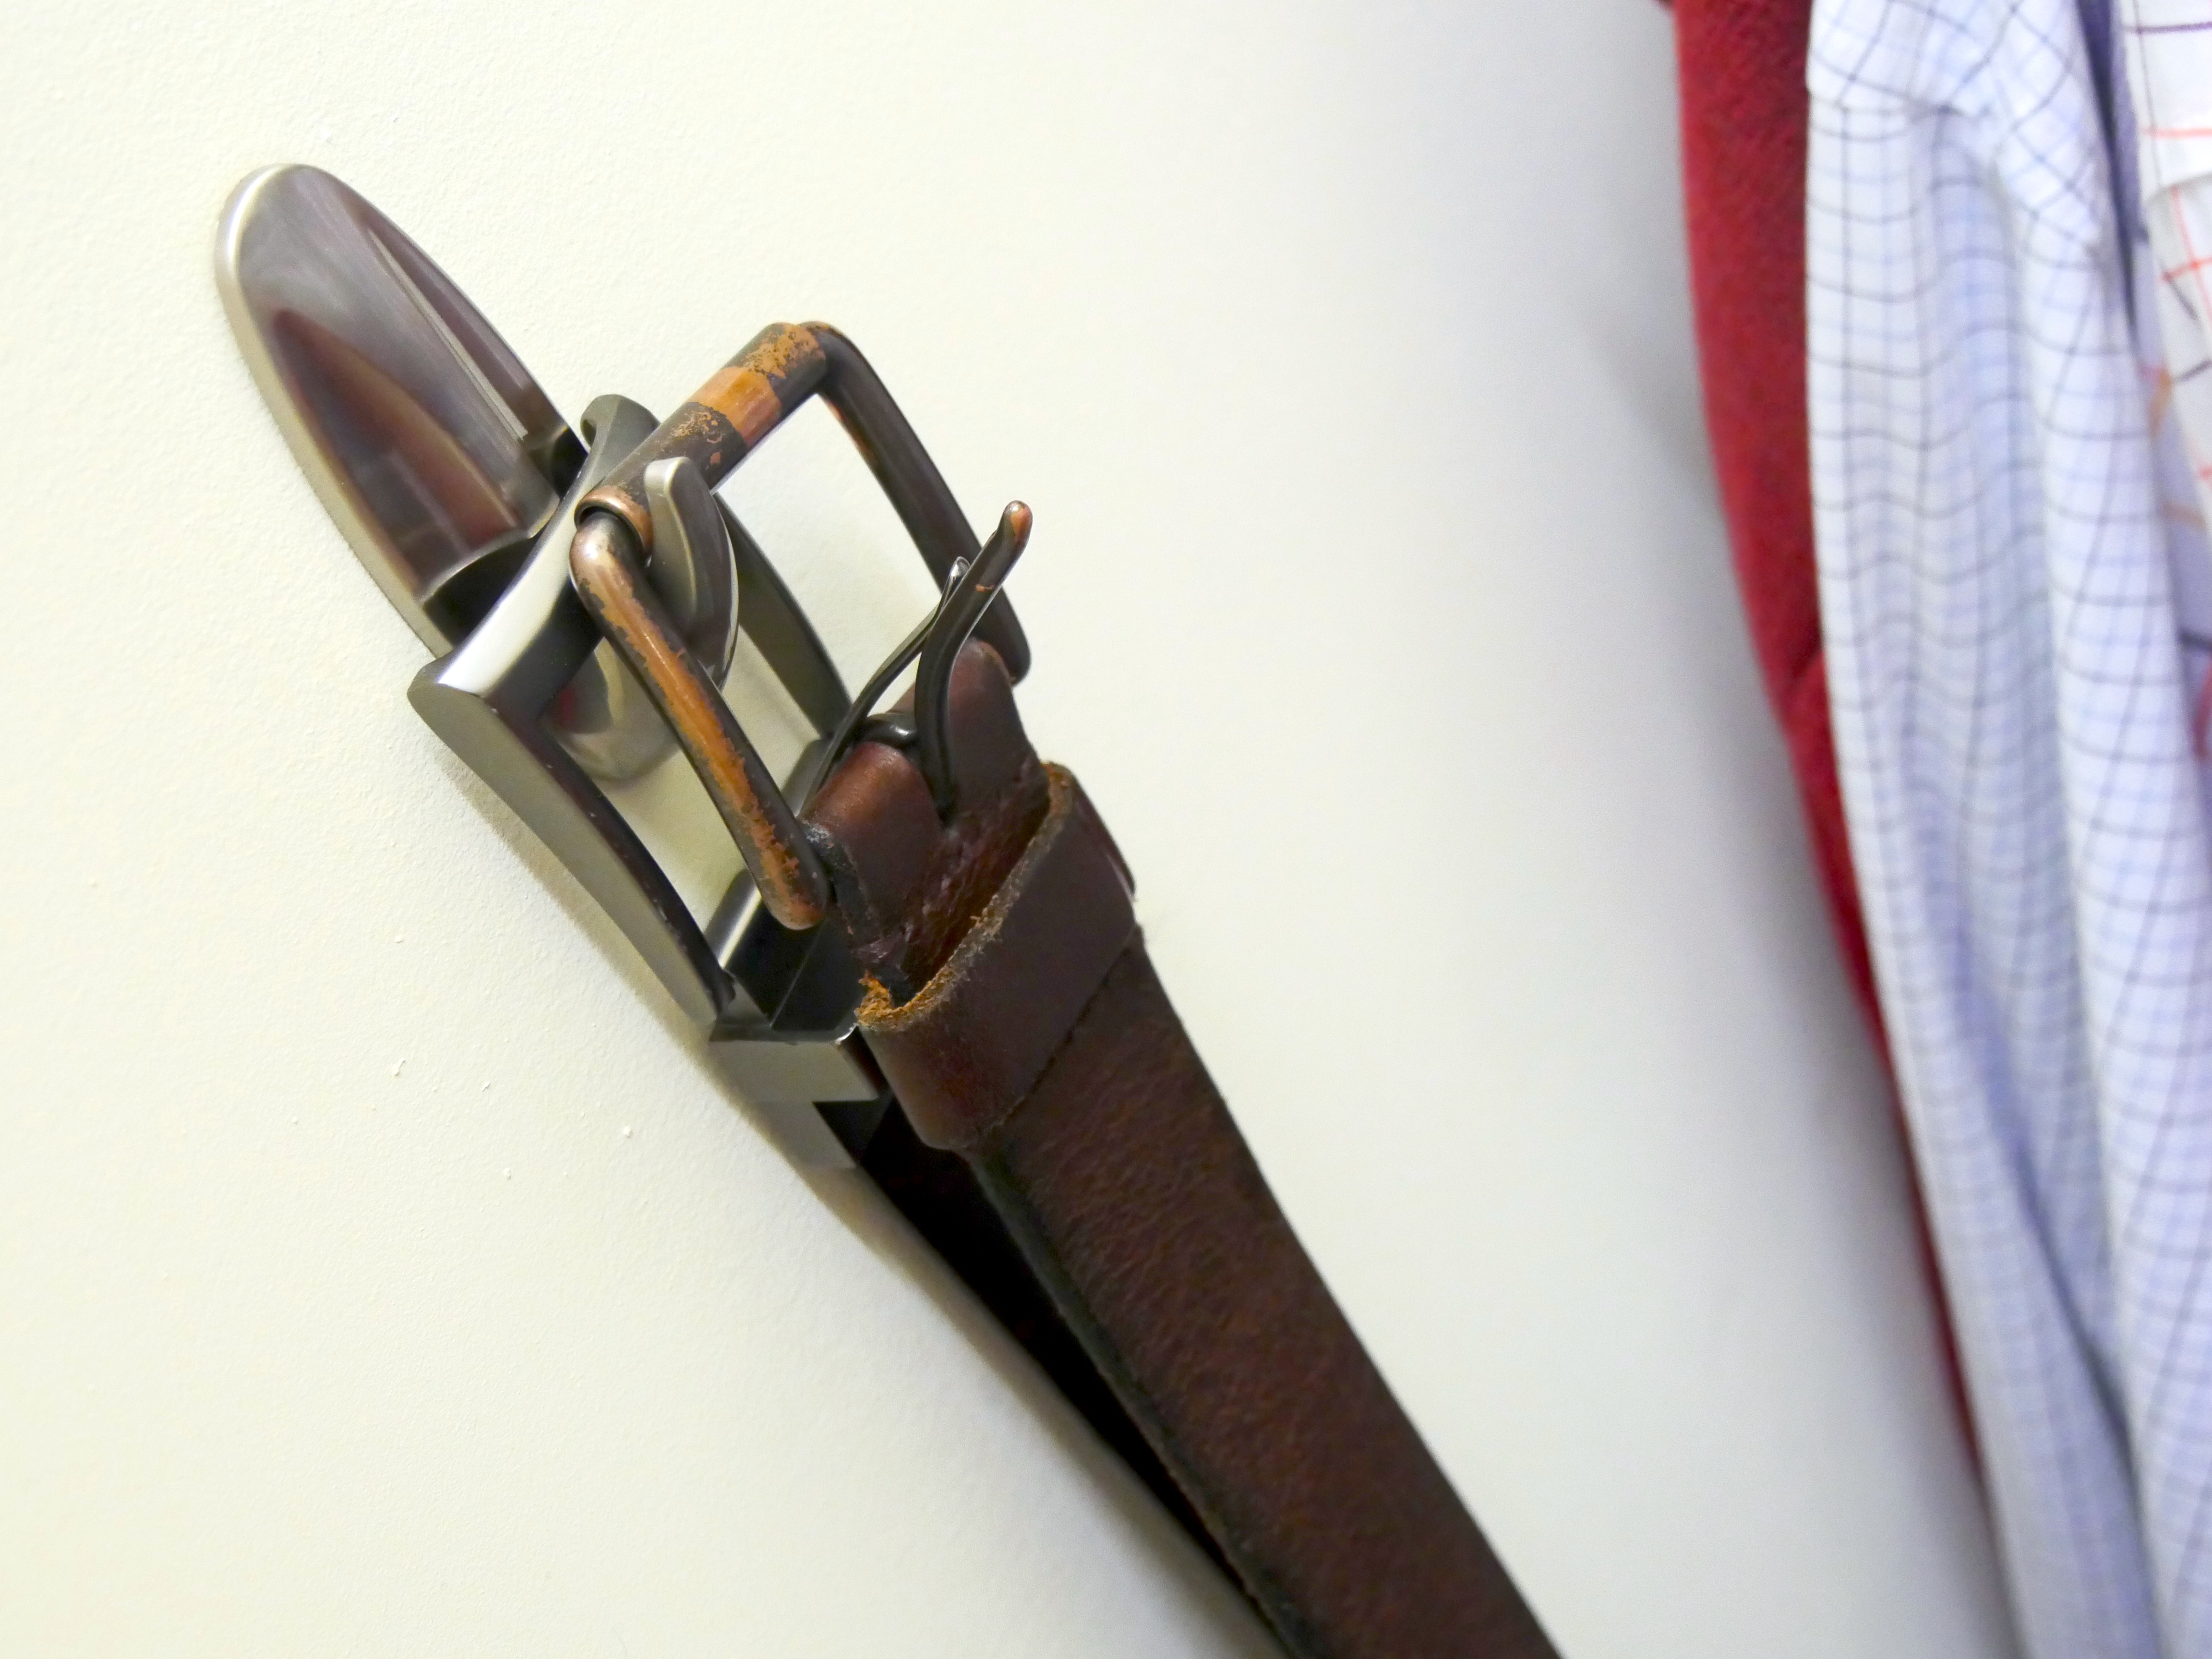 Hang belts in the closet